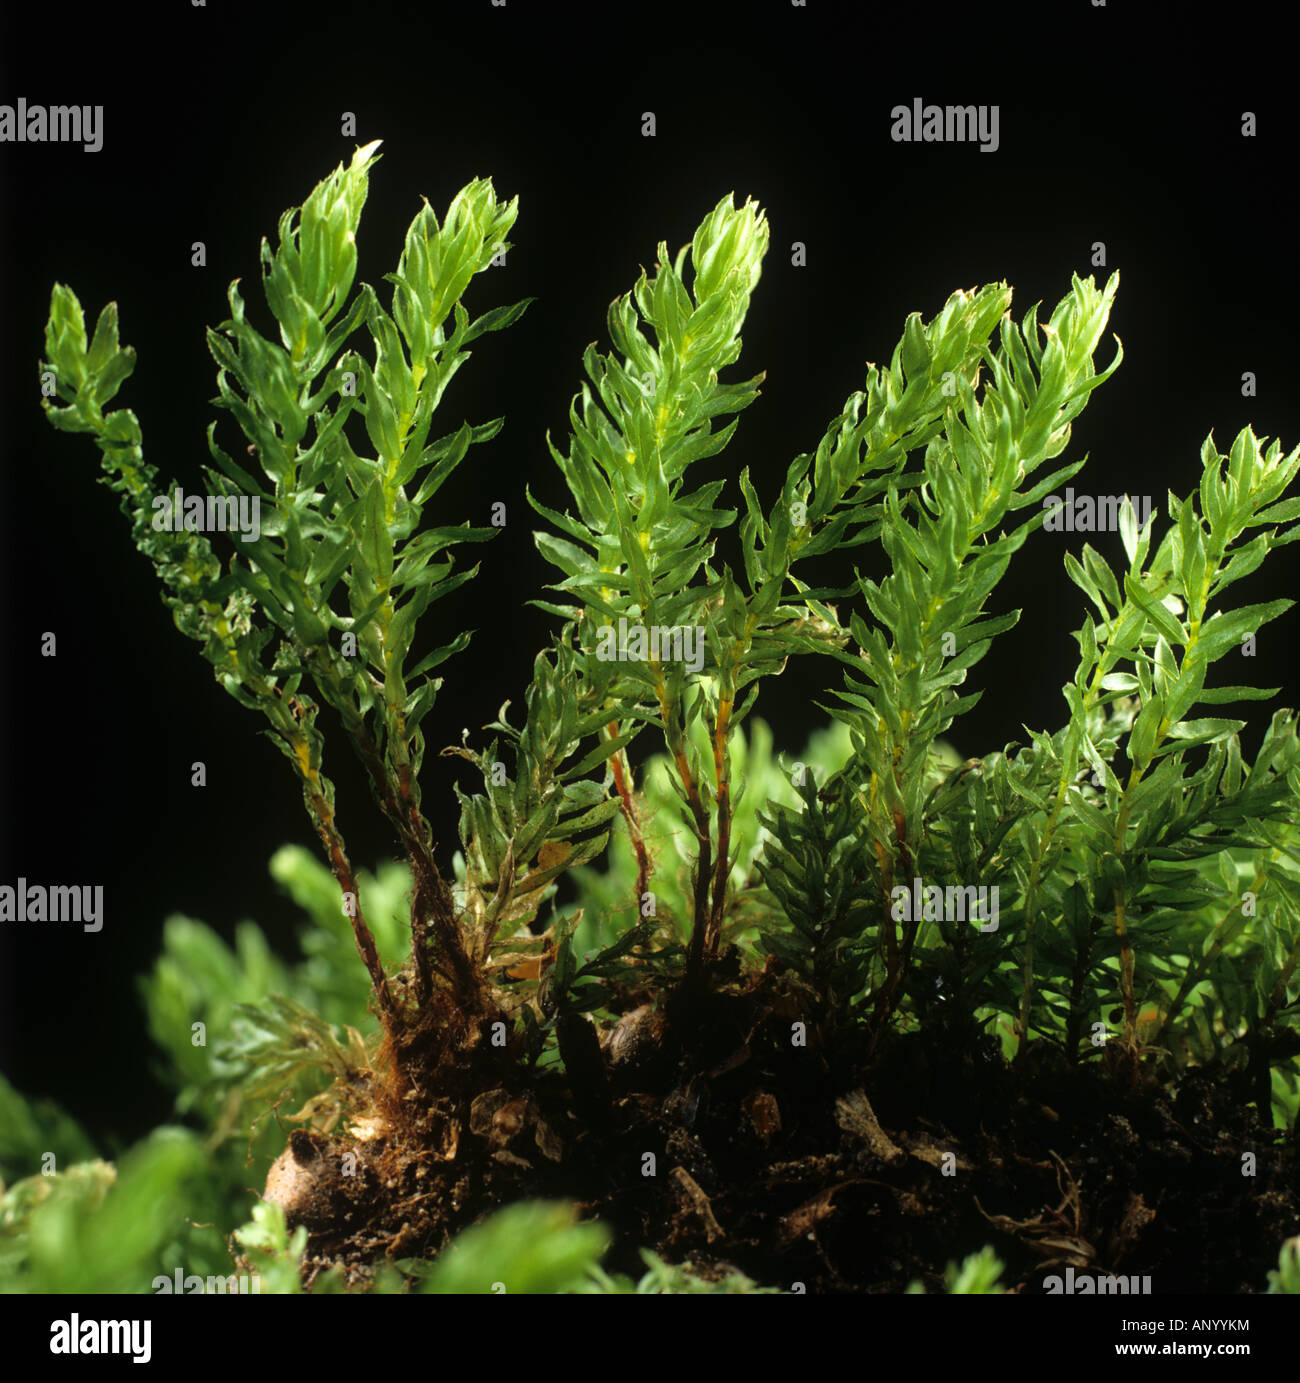 Leaves and foliage of a moss Bryum capillare - Stock Image